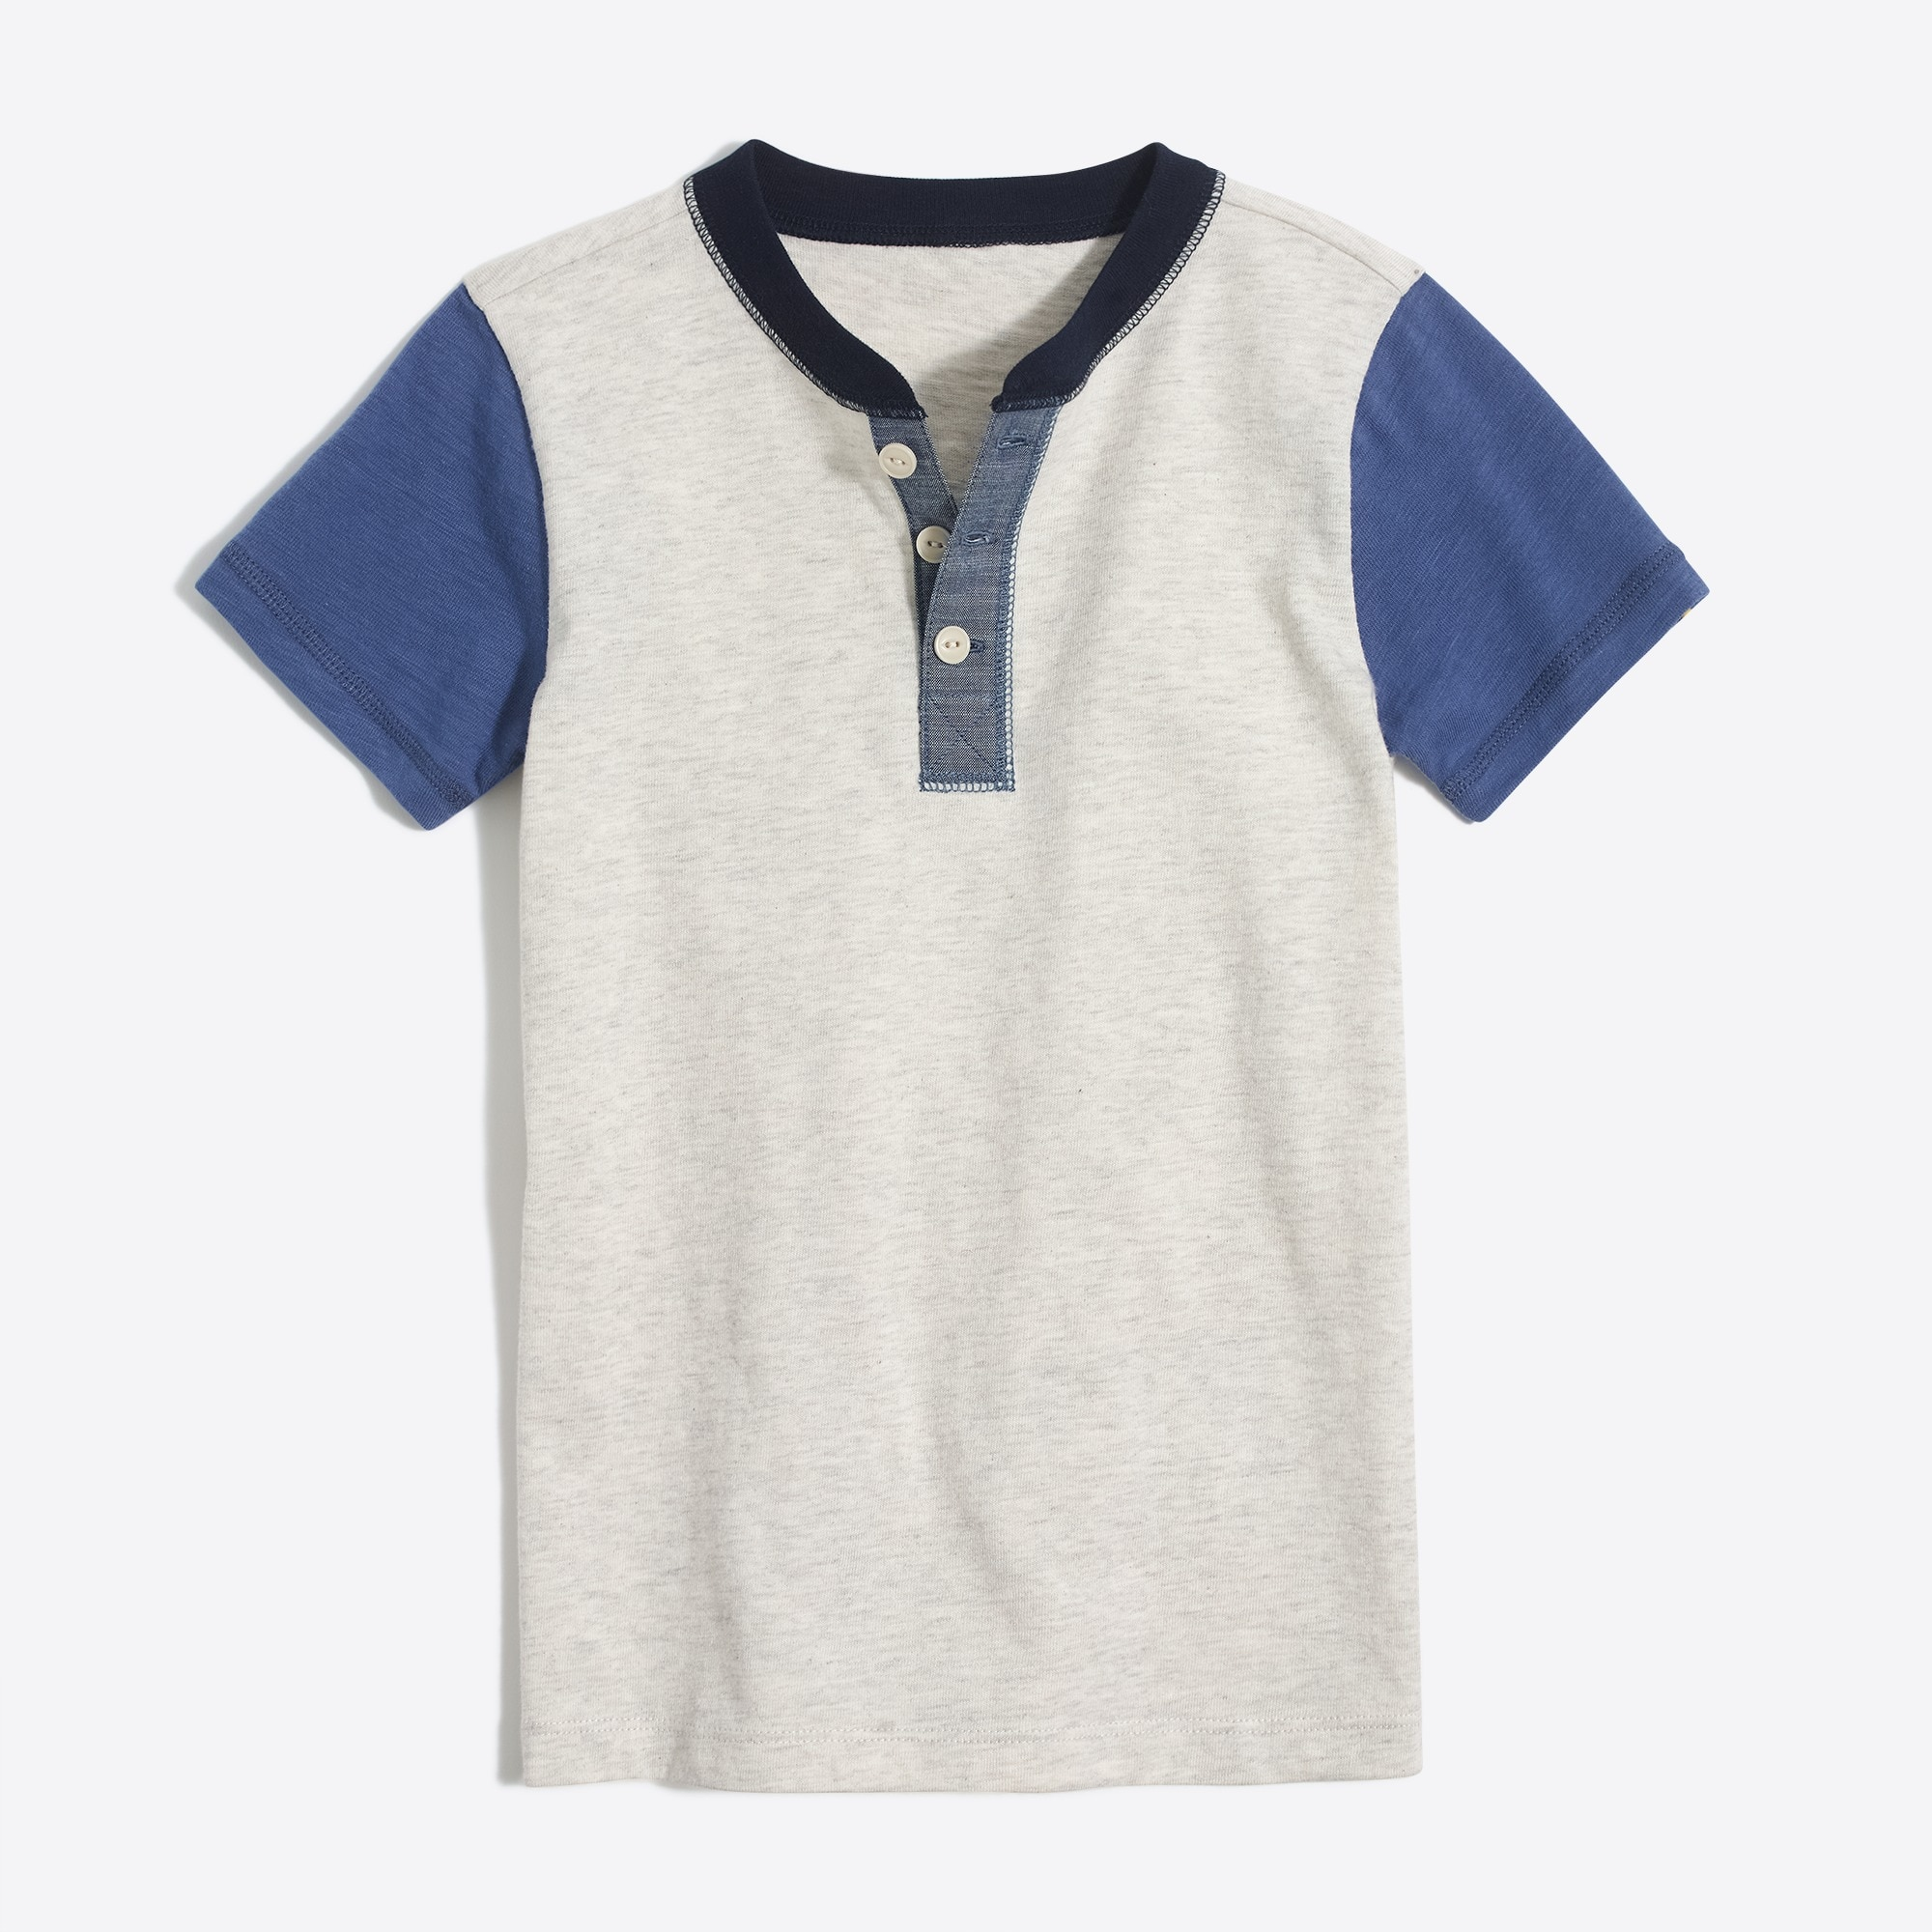 Image 2 for Boys' short-sleeve colorblock henley shirt